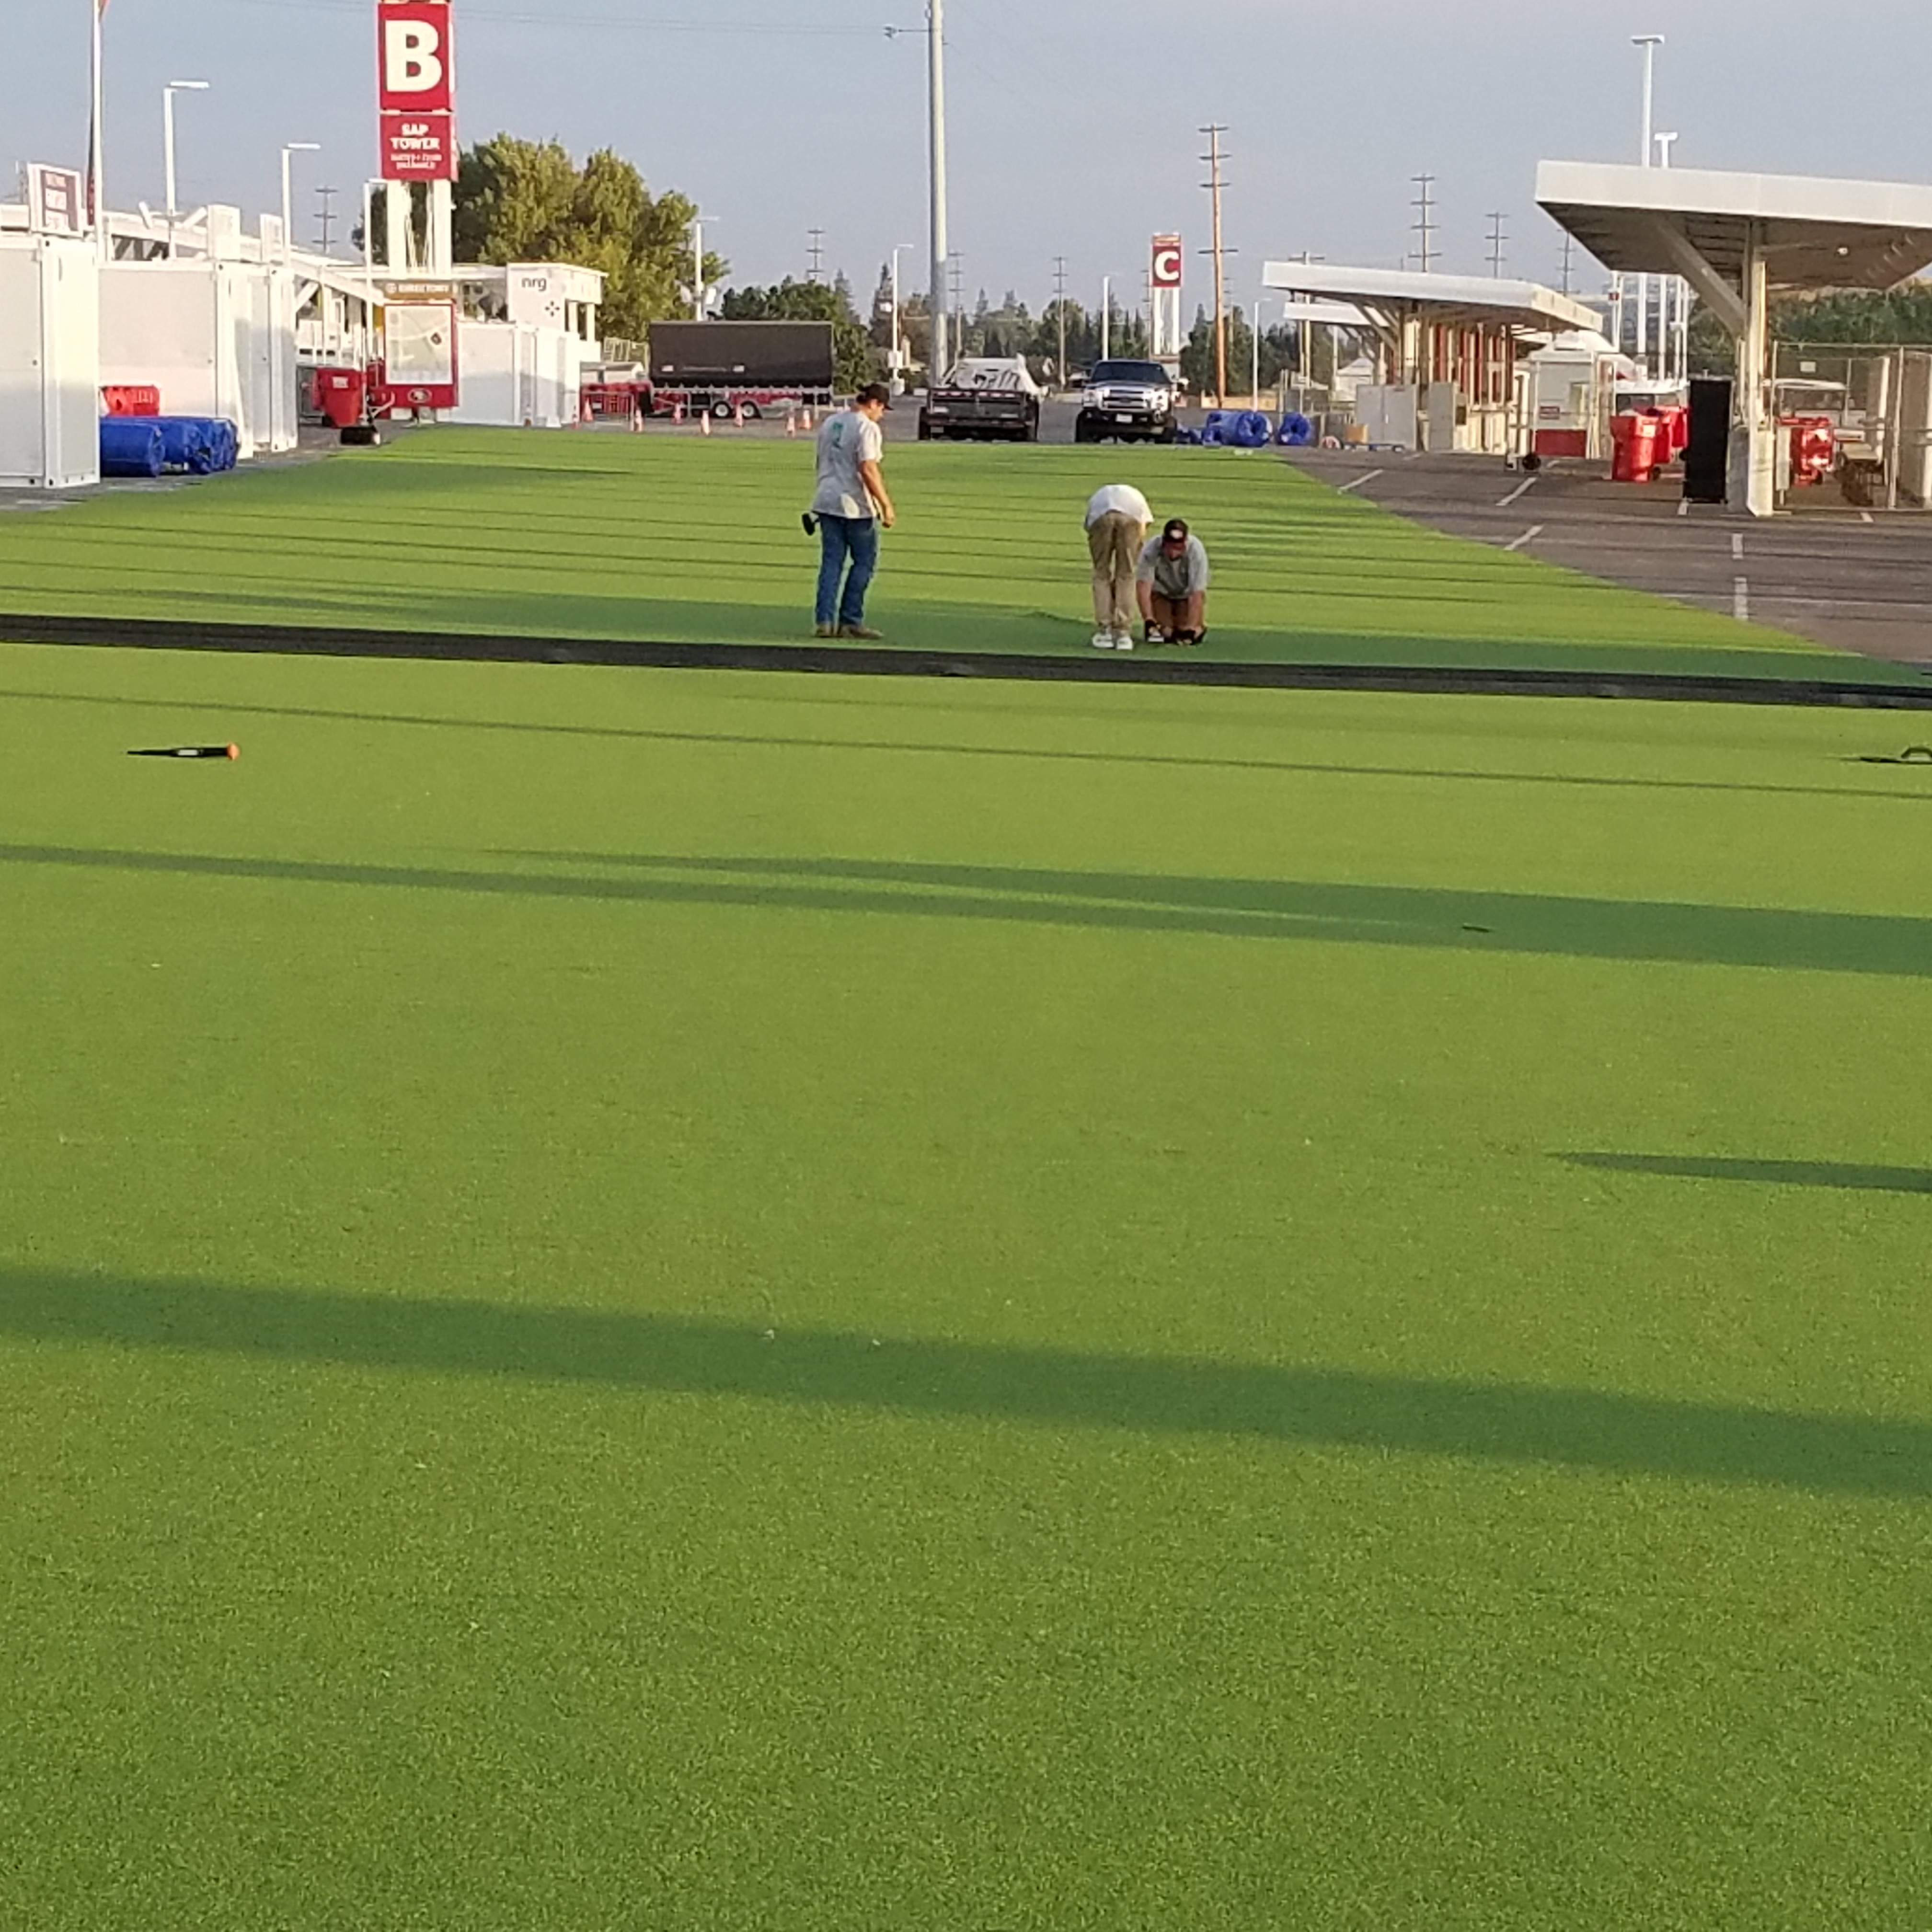 Trainers Turf-63 best artificial grass,best fake grass,best synthetic grass,best turf,best artificial grass for home,artificial turf,synthetic turf,artificial turf installation,how to install artificial turf,used artificial turf,artificial turf,synthetic turf,artificial turf installation,how to install artificial turf,used artificial turf,artificial turf,synthetic turf,artificial turf installation